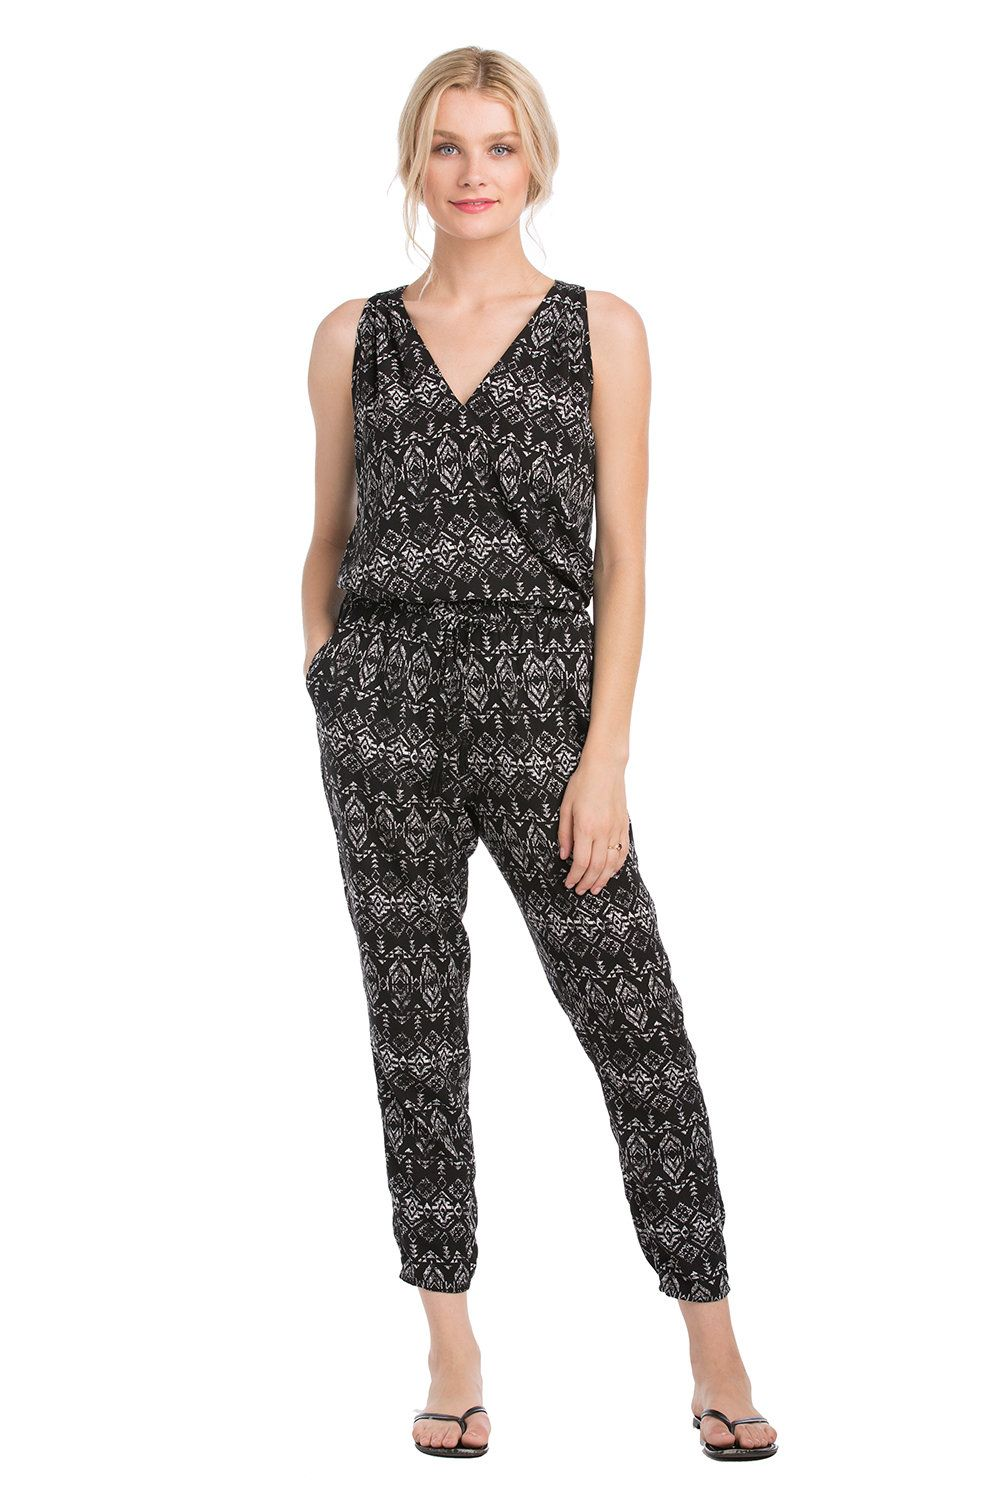 Our new Tahiti jumpsuit can be separated into a top and pants. It's sleek and the fabric is light enough for summer. vacaystyle.com